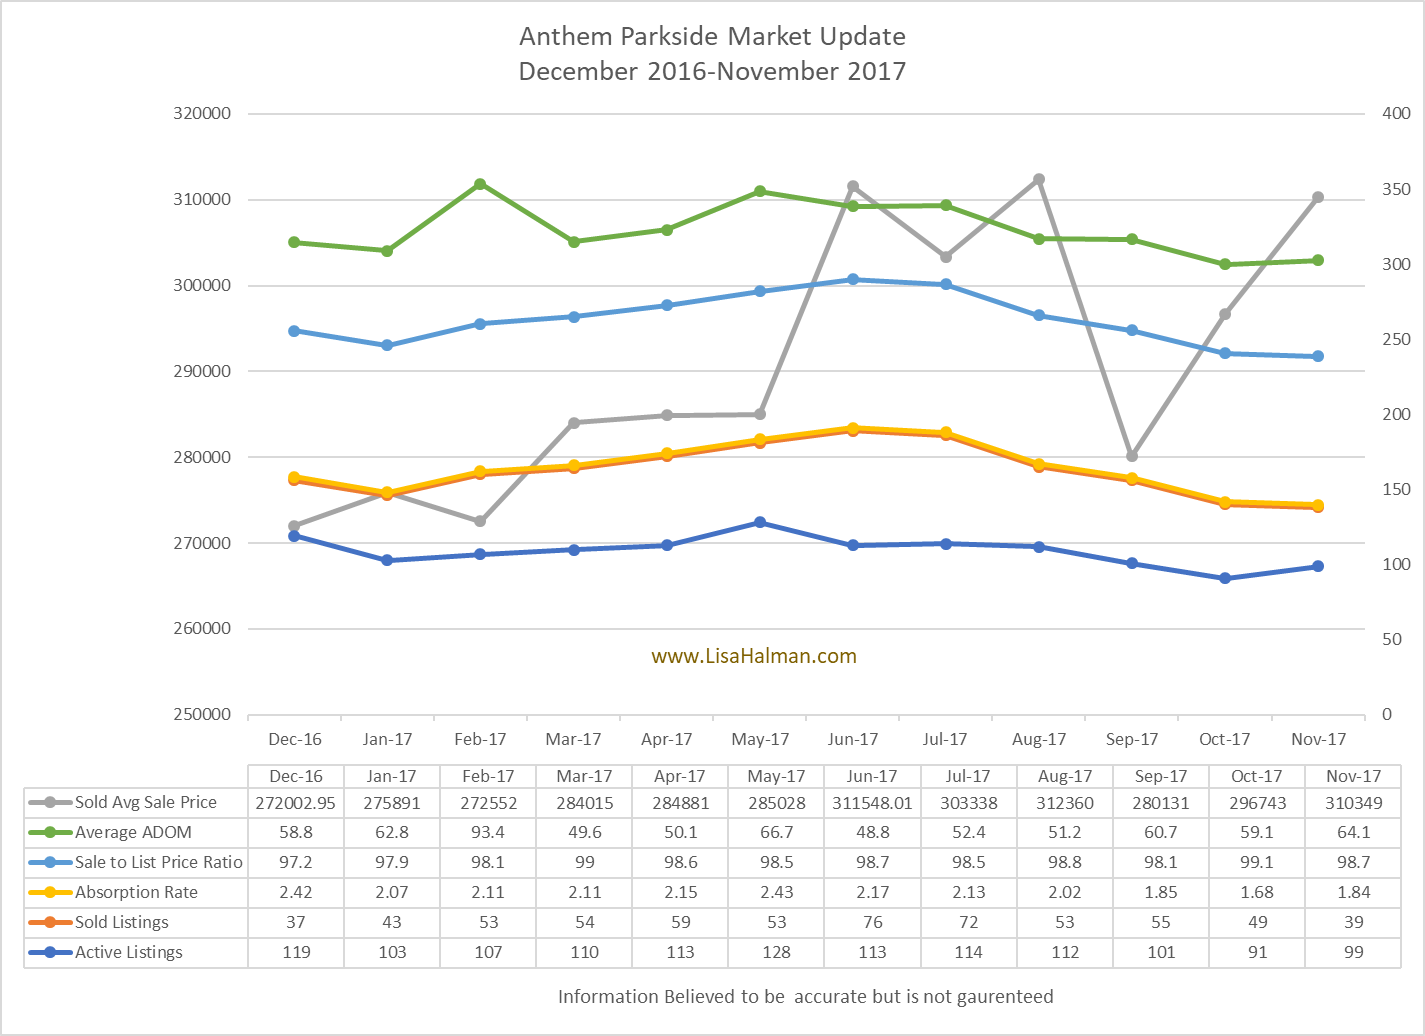 Anthem Parkside Market Update November 2017